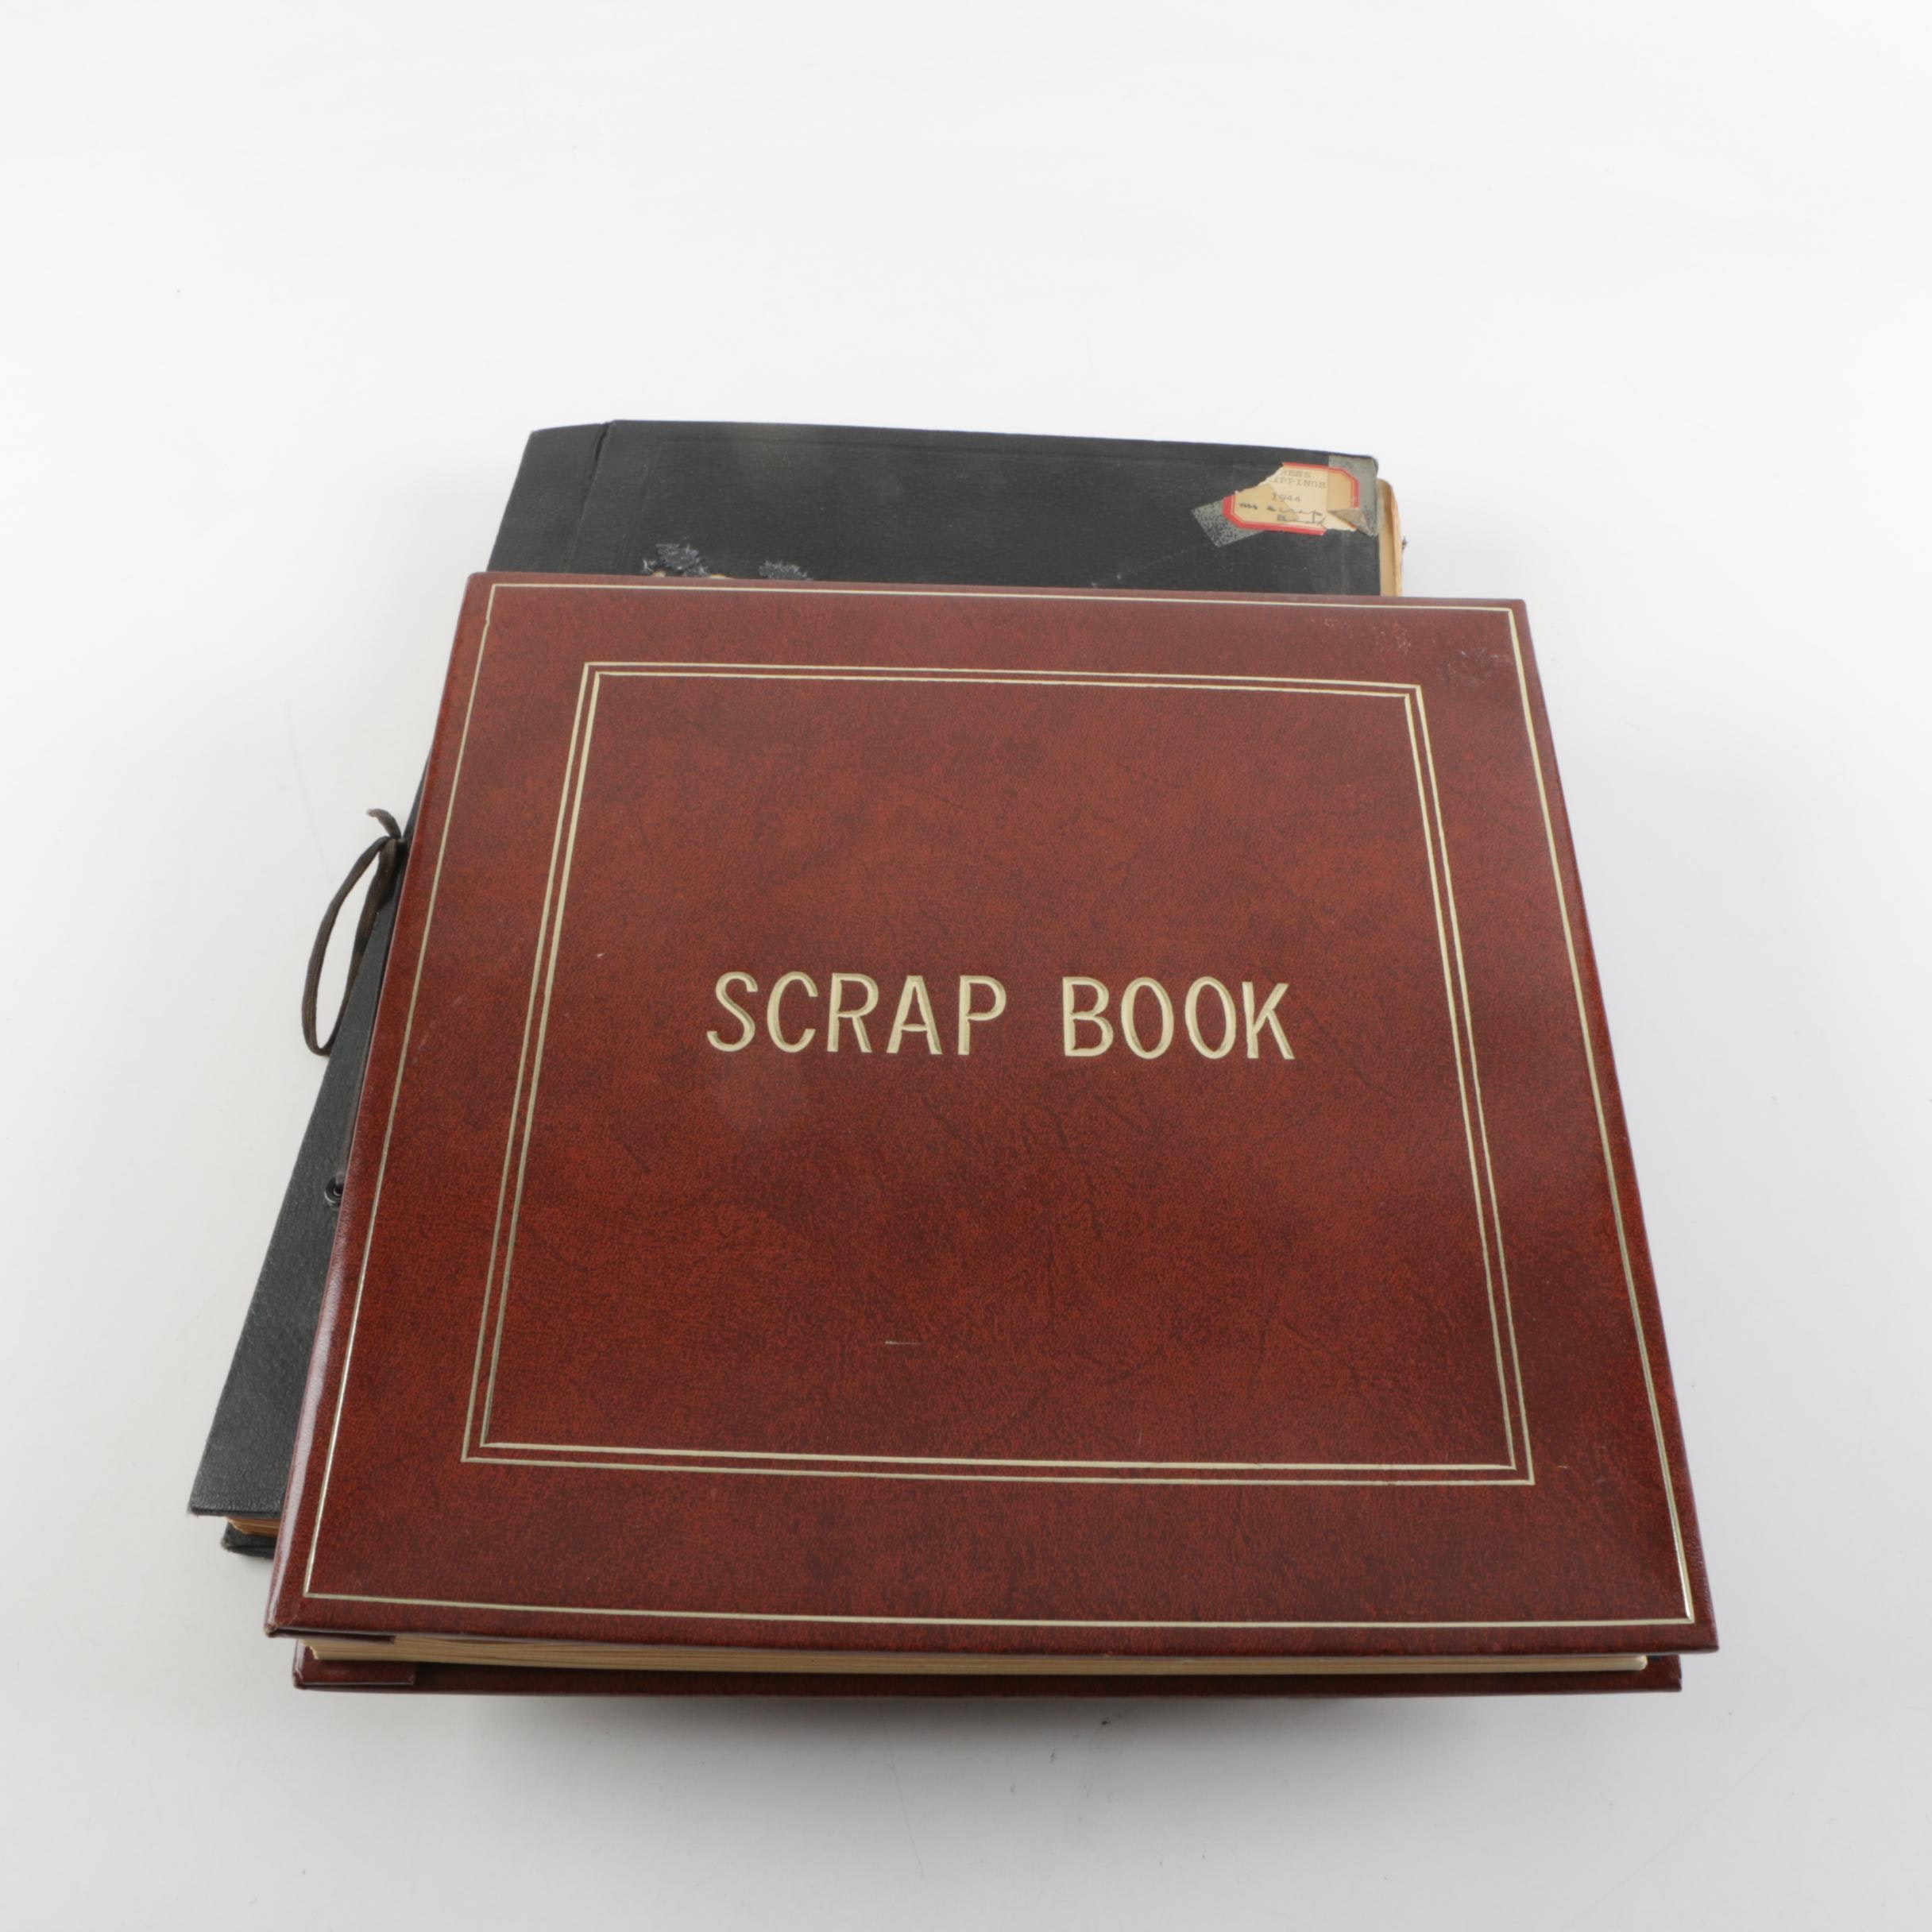 Pair of 1940s Era Scrapbooks with Celebrities and Cultural News Clippings